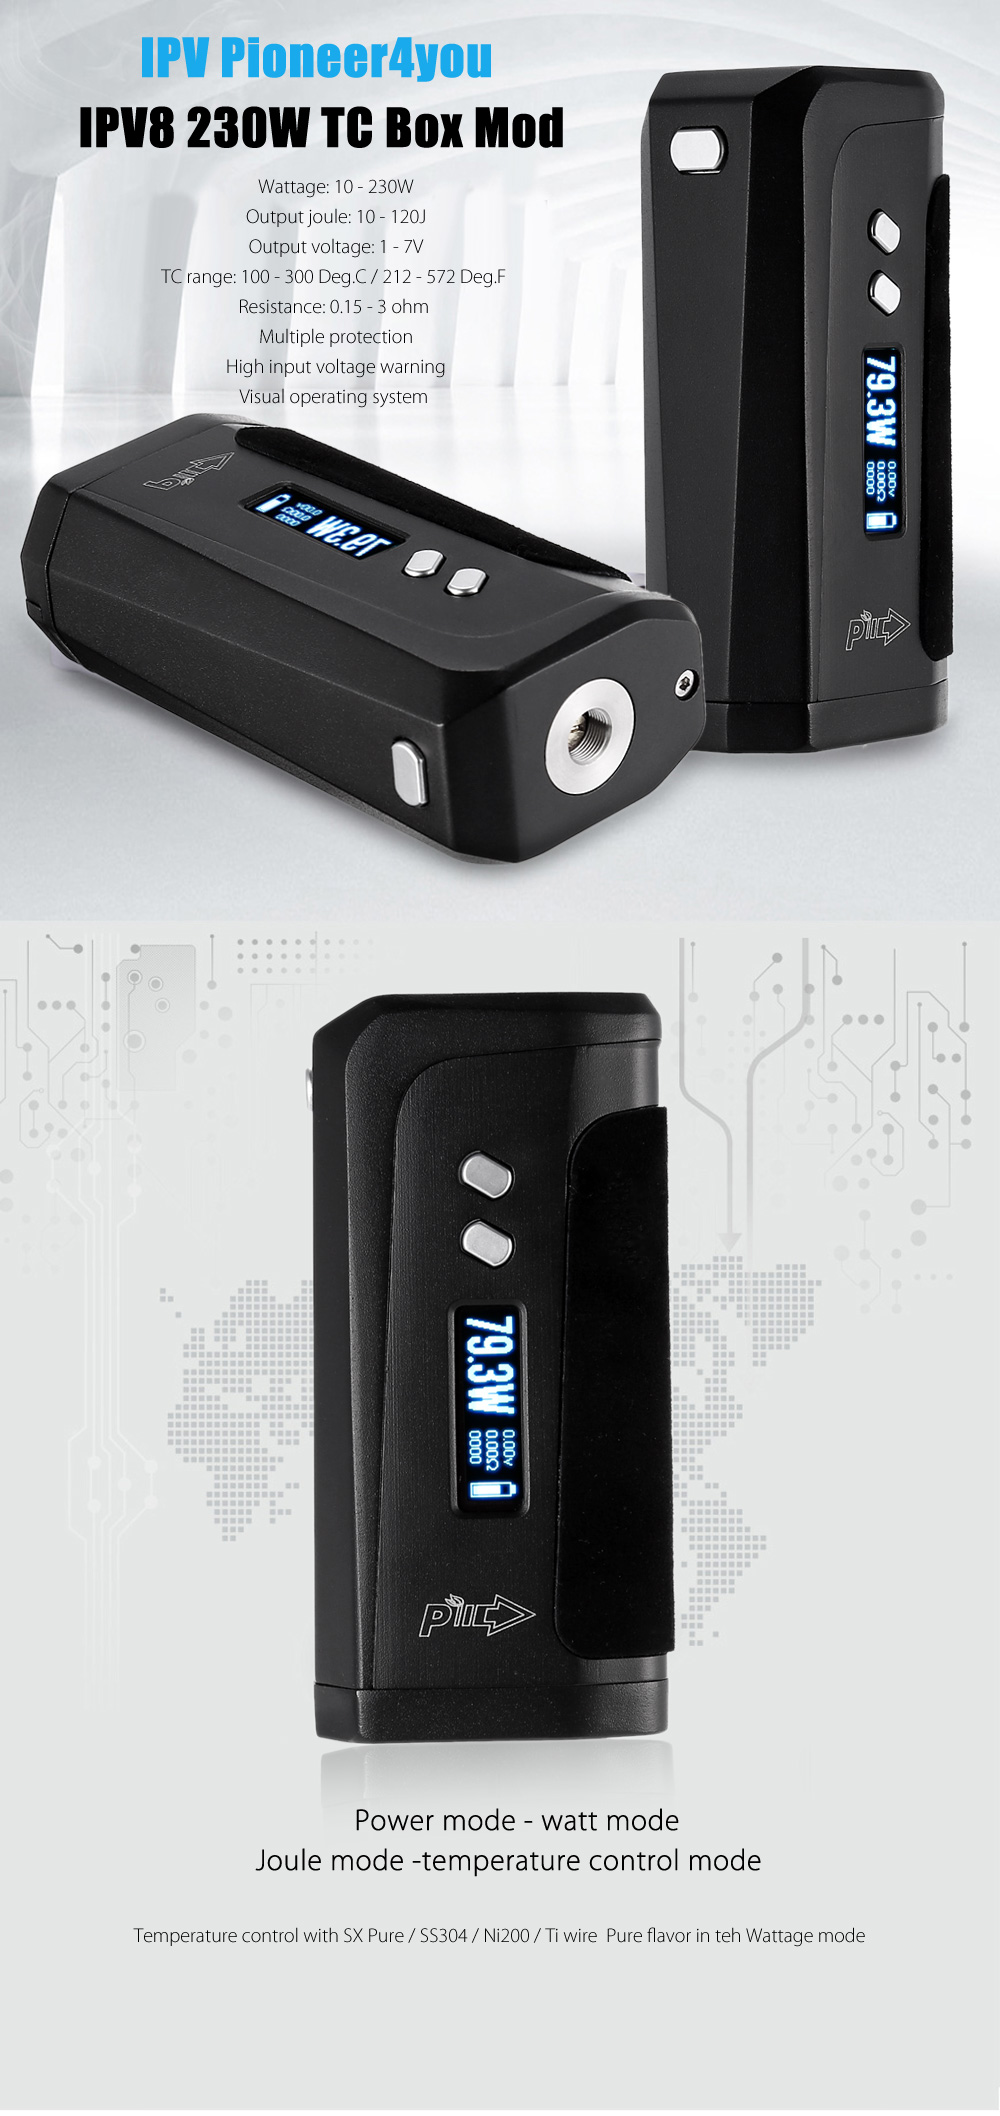 Originale IPV Pioneer4you IPV8 230W TC Box Mod